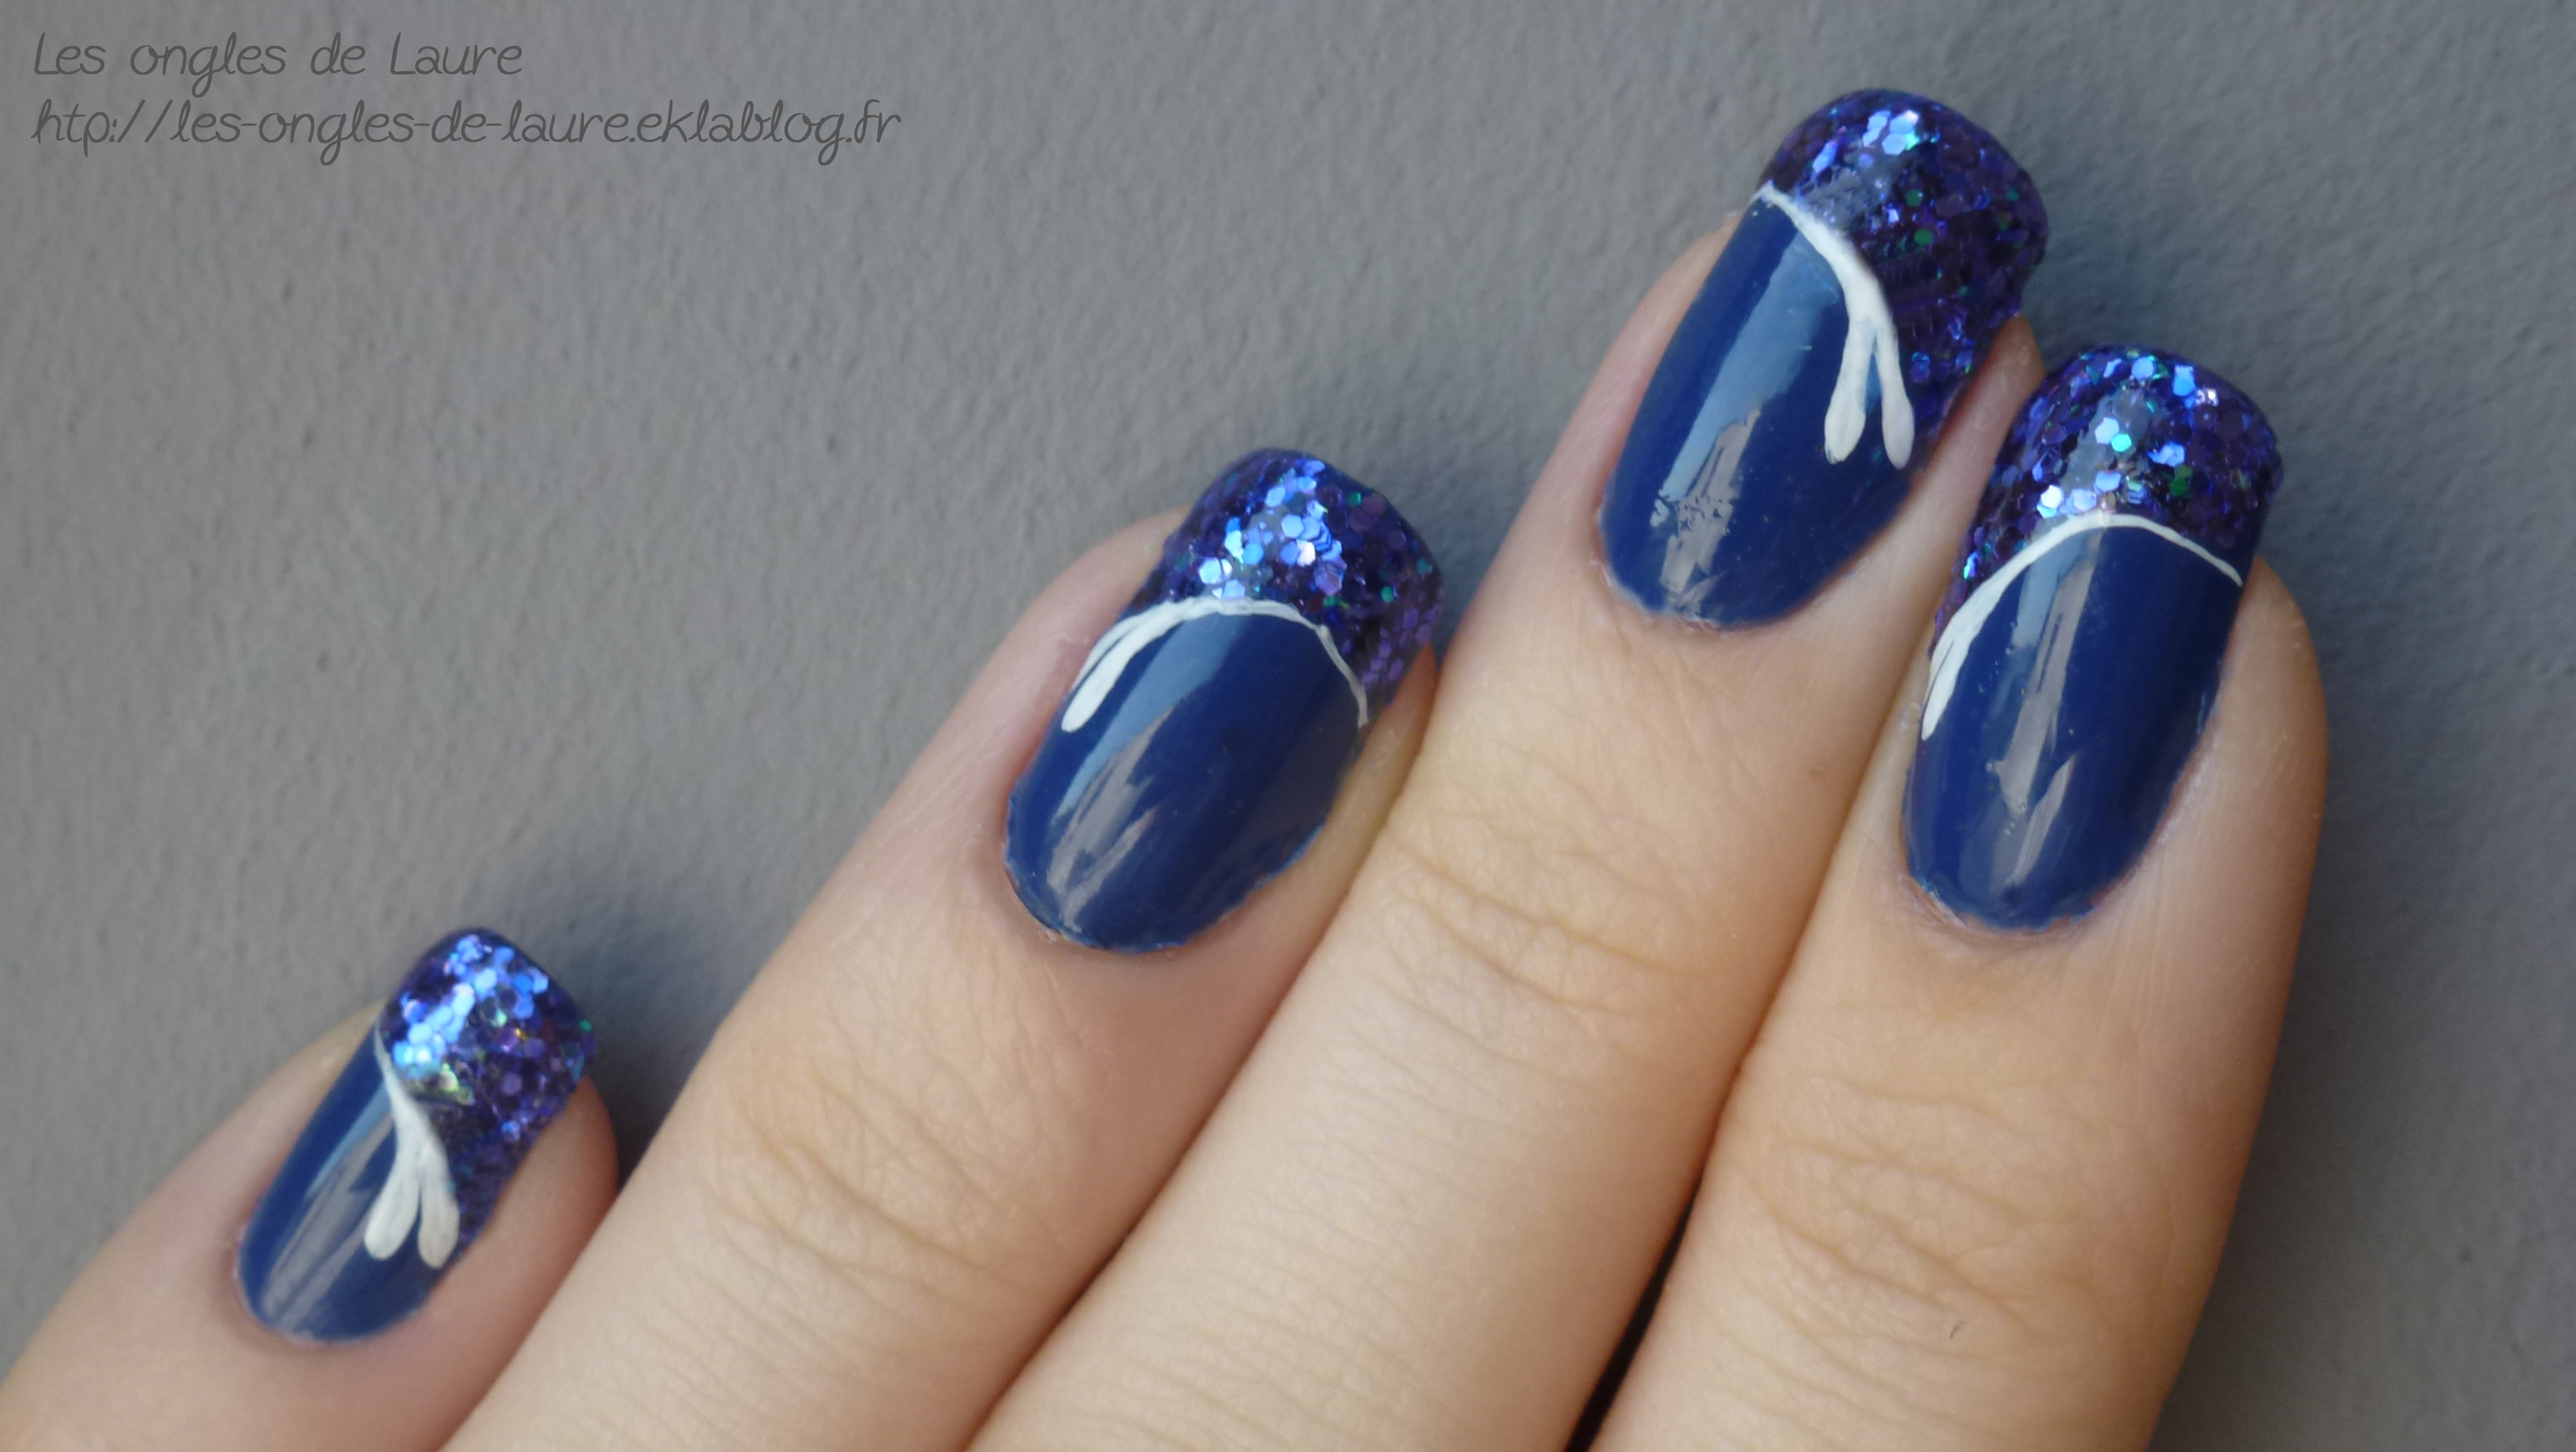 Gut bekannt Nail Art bleu pailleté - Les ongles de Laure - Blog Nail Art AT98